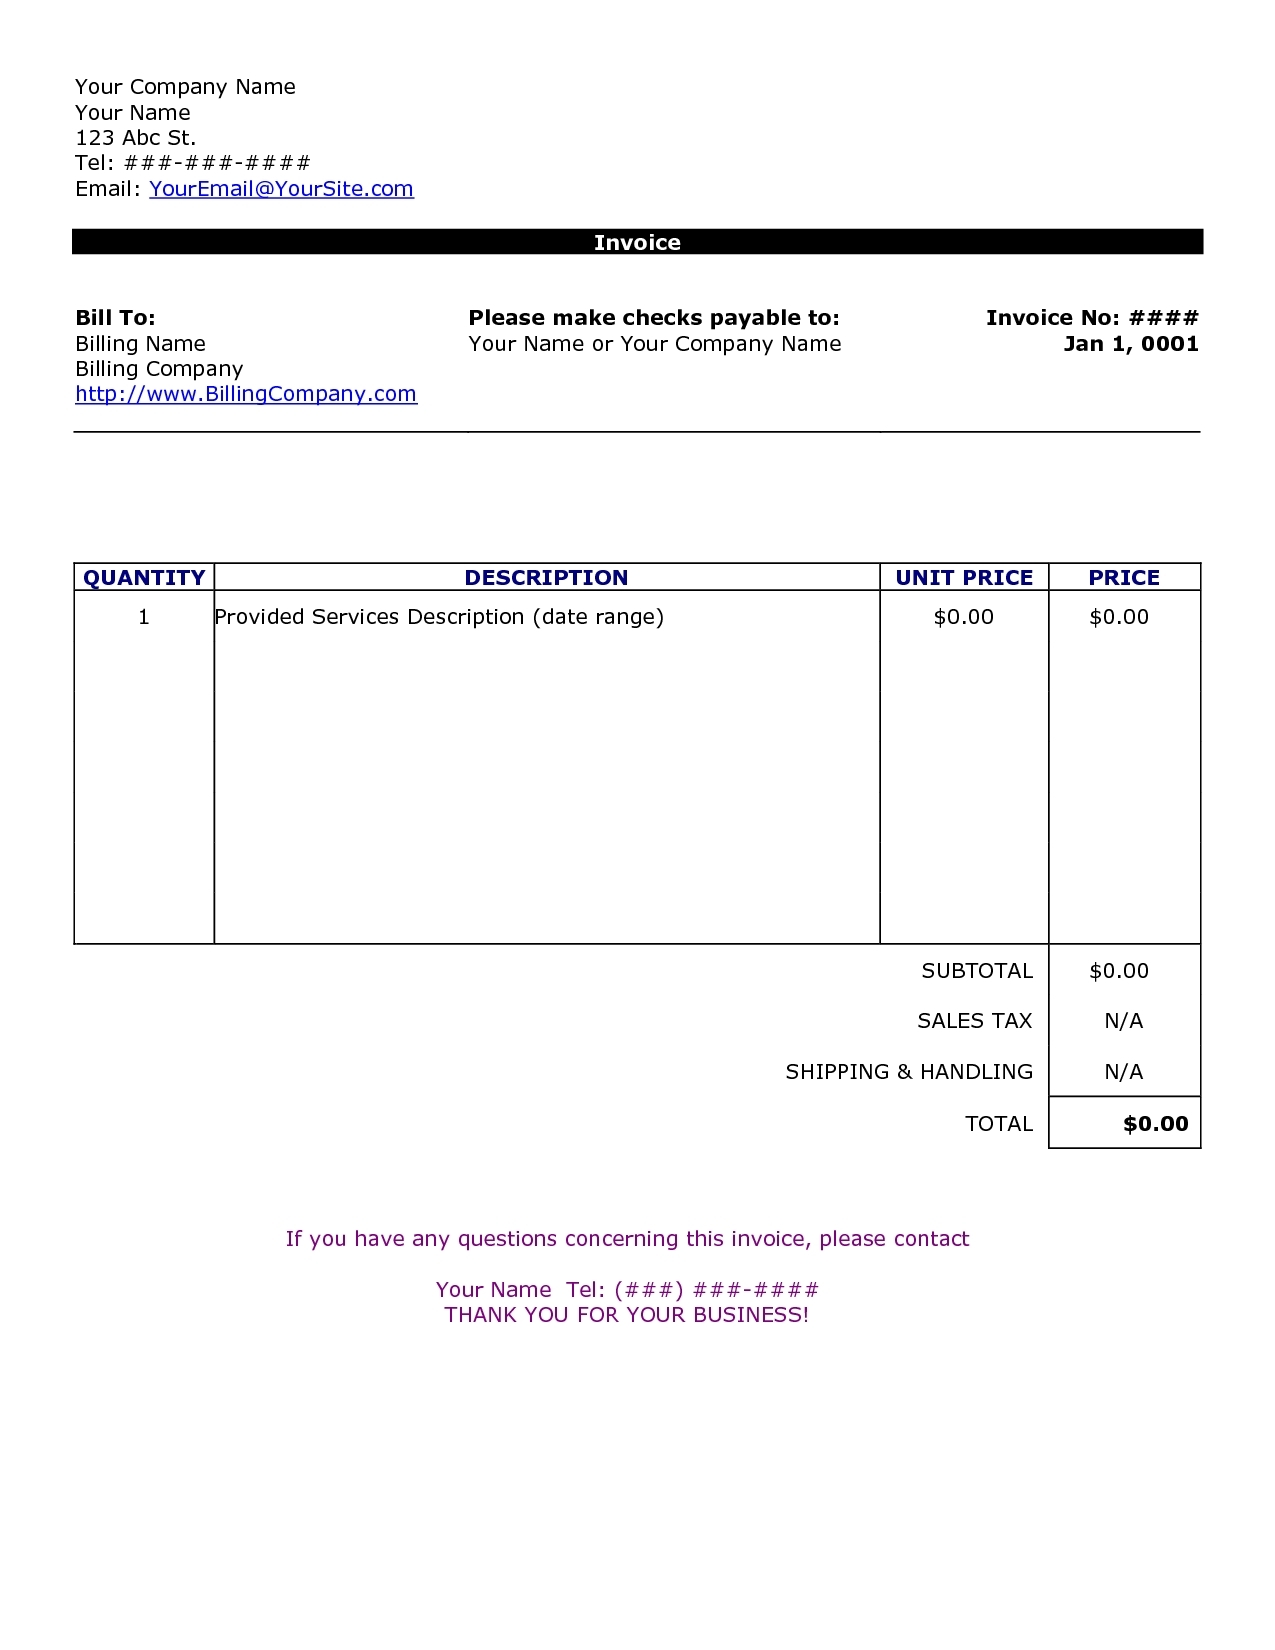 word document invoice invoice template word doc invoice template photo pictures 1275 X 1650